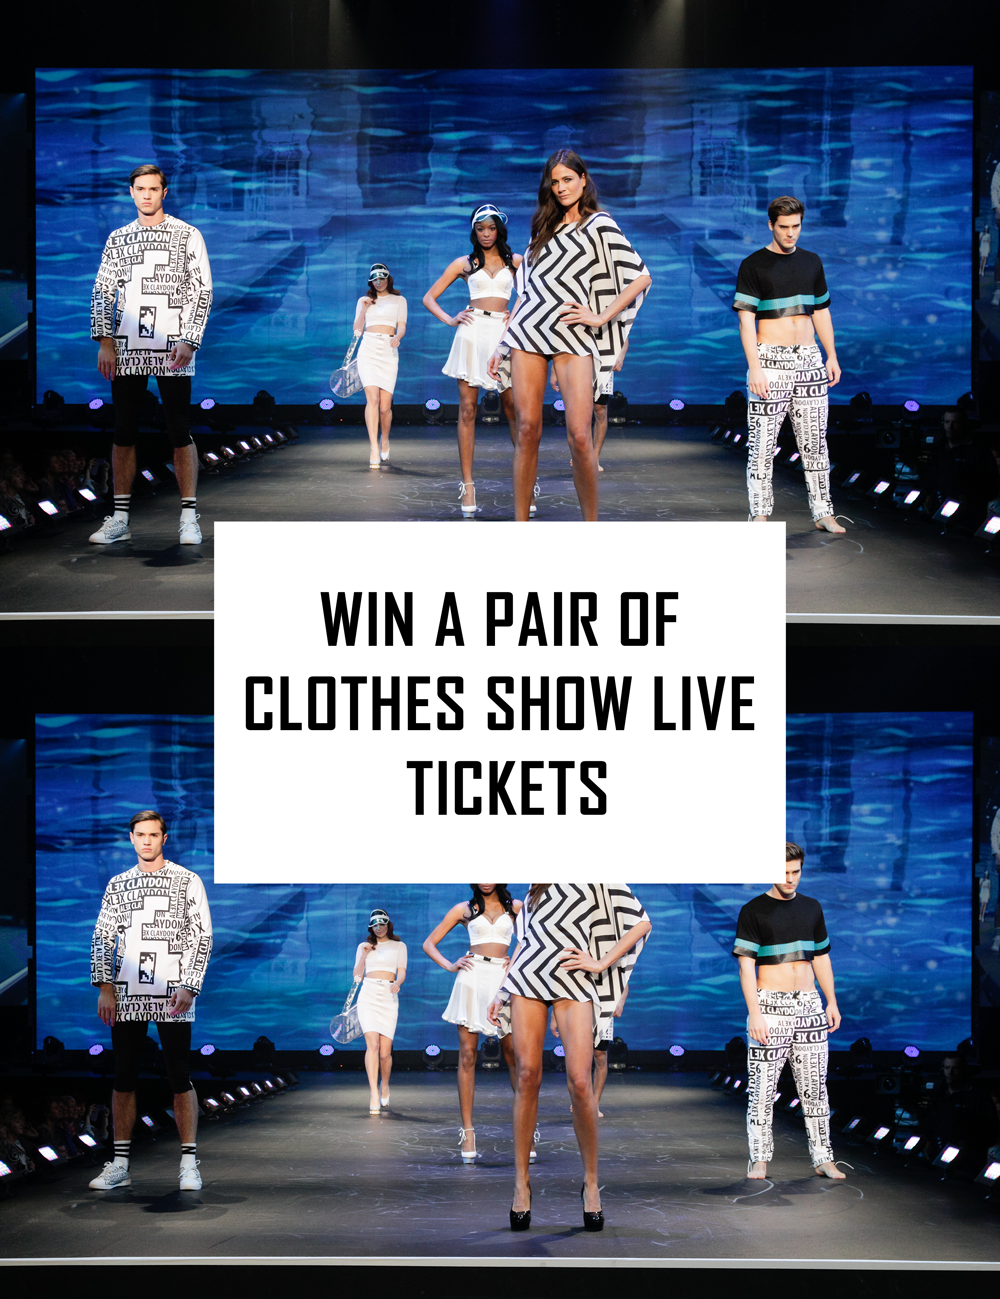 A beauty blogger hosts a competition to WIN A Pair of Clothes Show Live Tickets